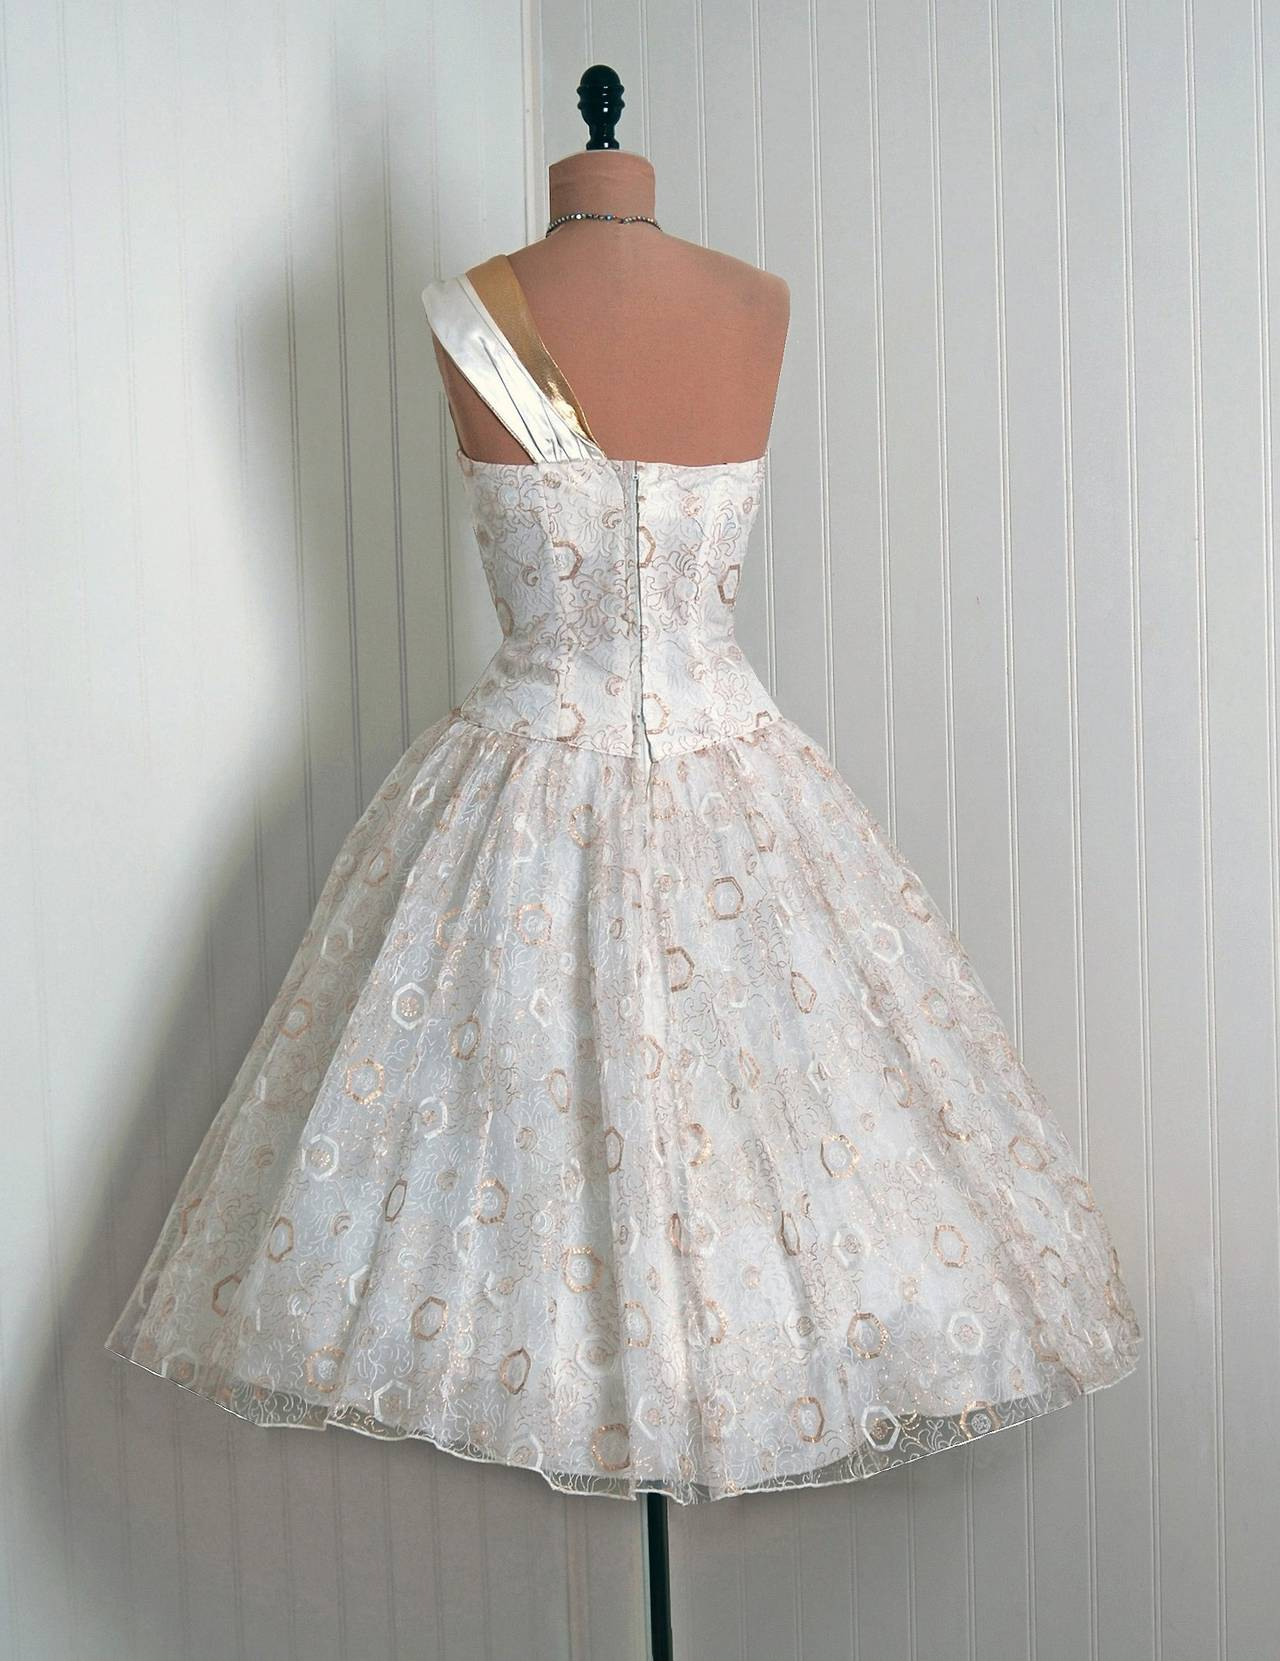 1950's Emma Domb White & Gold Embroidered Tulle One-Shoulder Party Dress 5